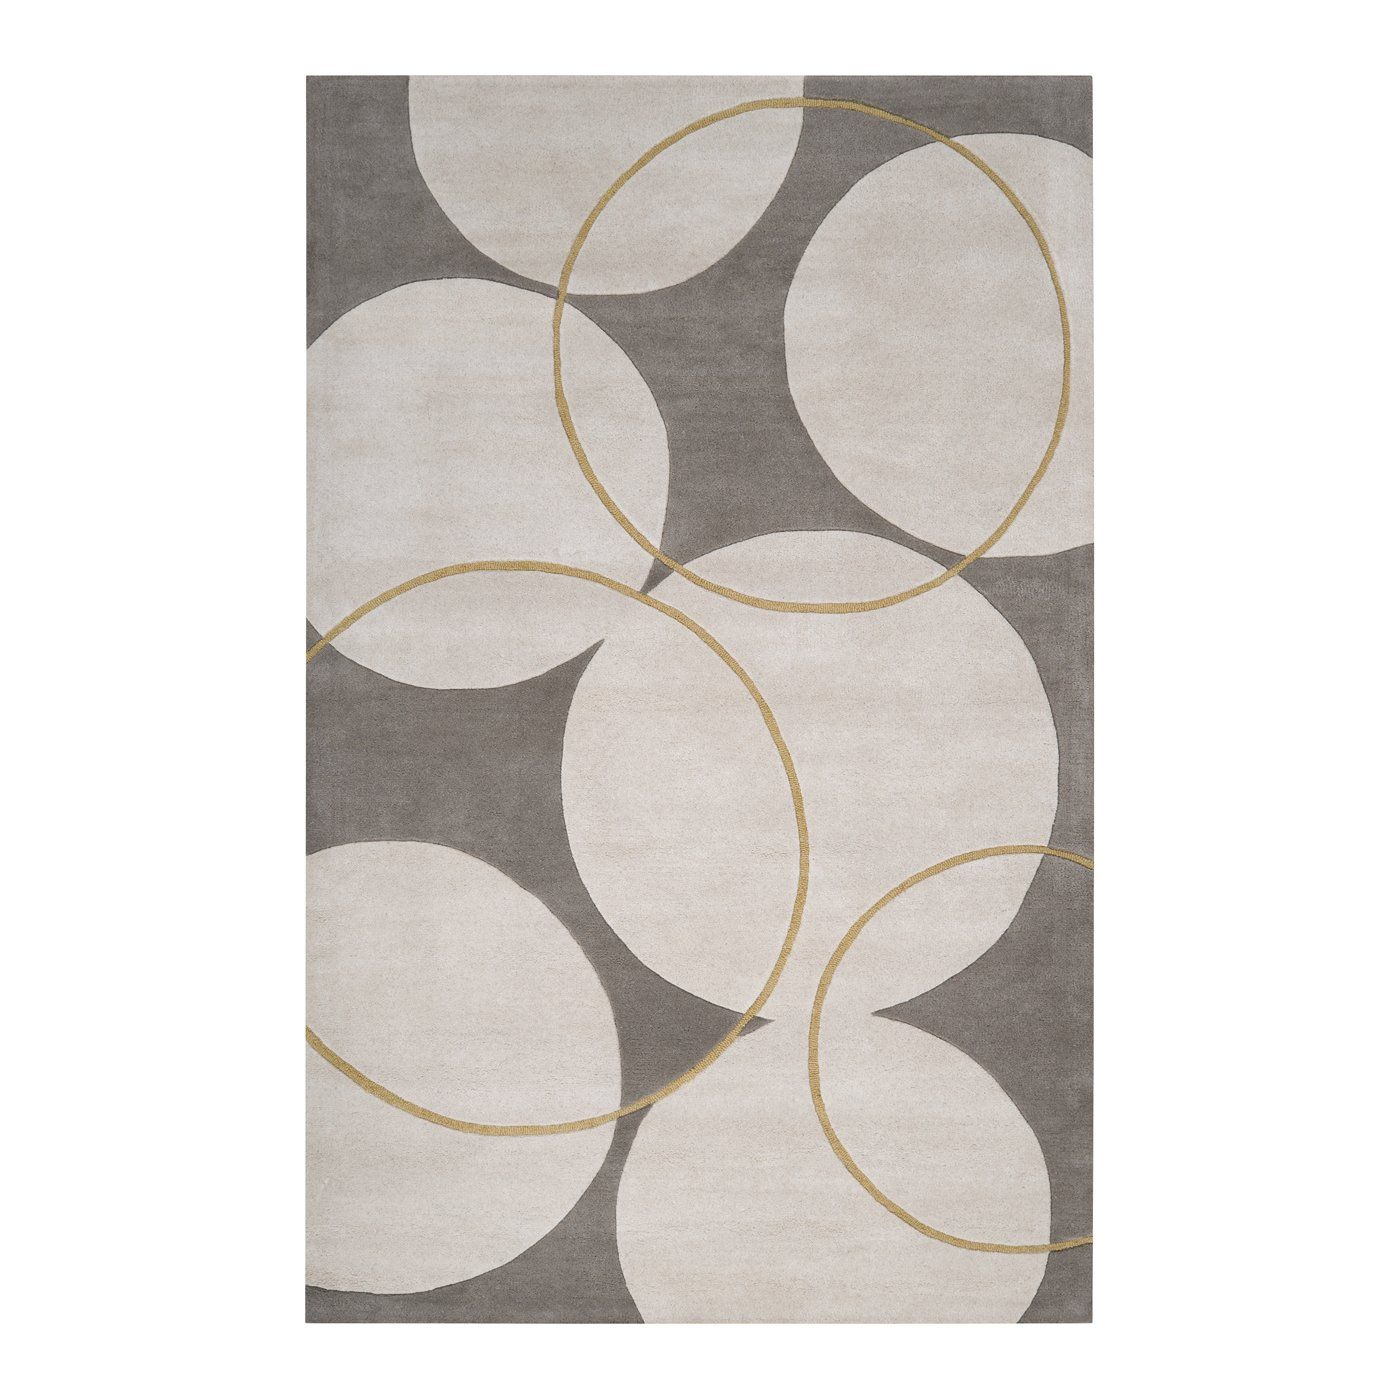 Shop Surya G5037 Goa Parchment Area Rug at Lowe's Canada